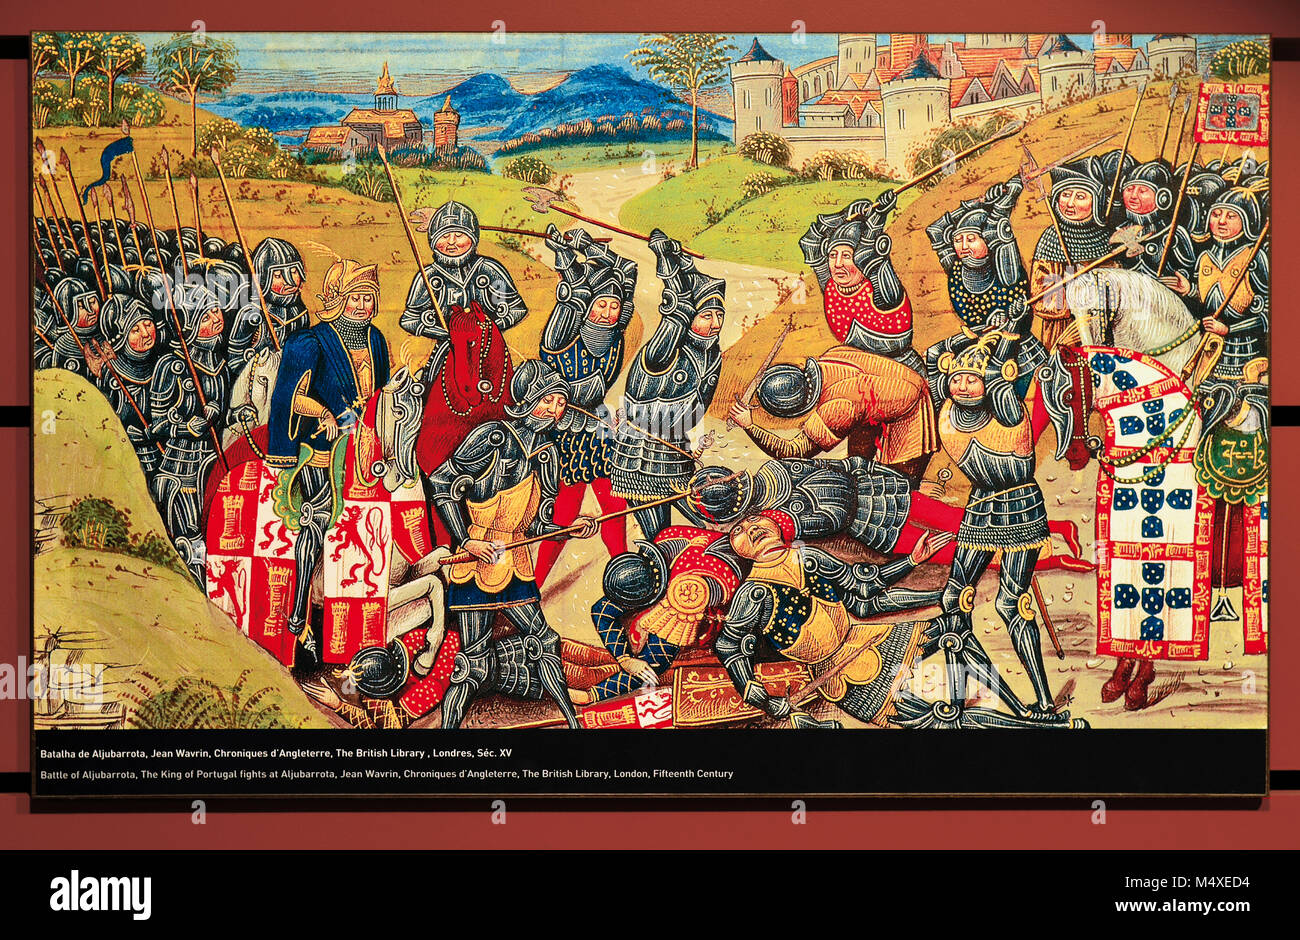 Copy of a medieval painting showing the historic Battlefield of Aljubarrota in the Interpretation Centre (CIBA) - Stock Image